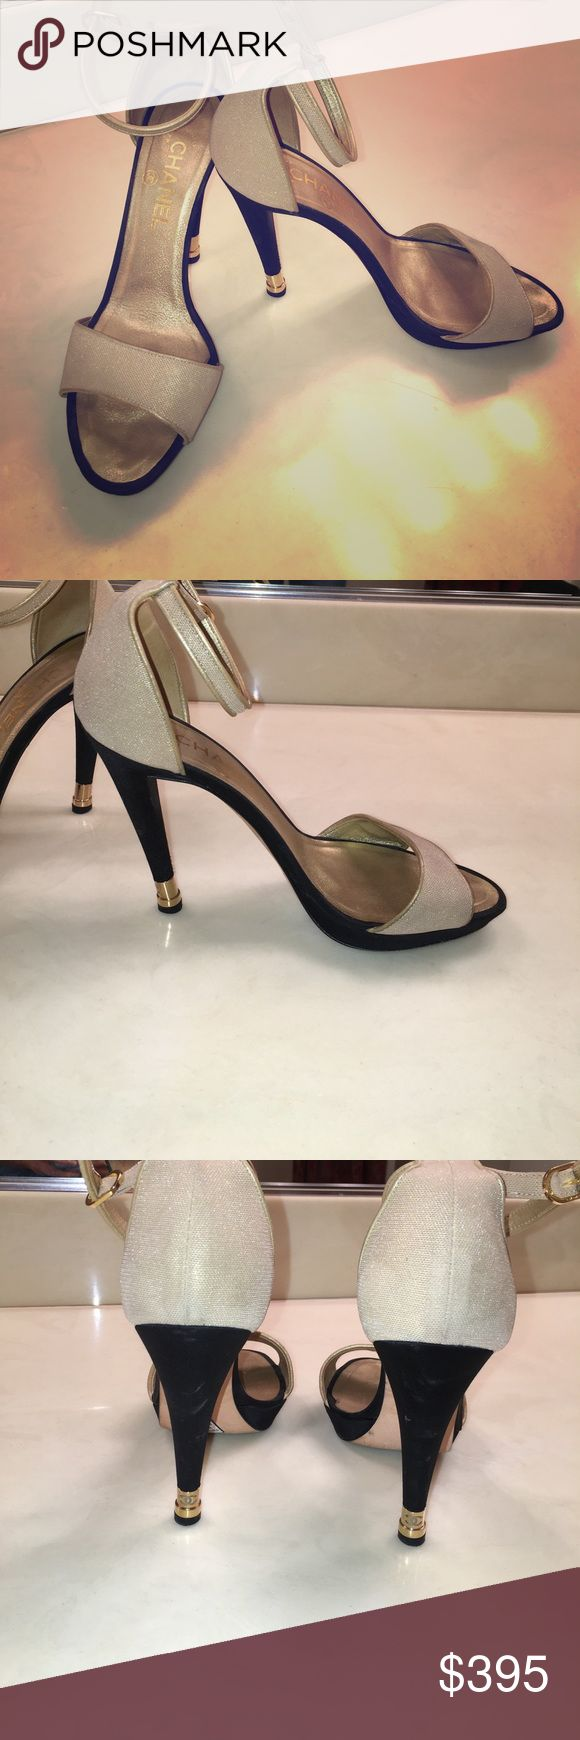 Rare Chanel pumps Gently worn Chanel pumps, size 39 CHANEL Shoes Heels